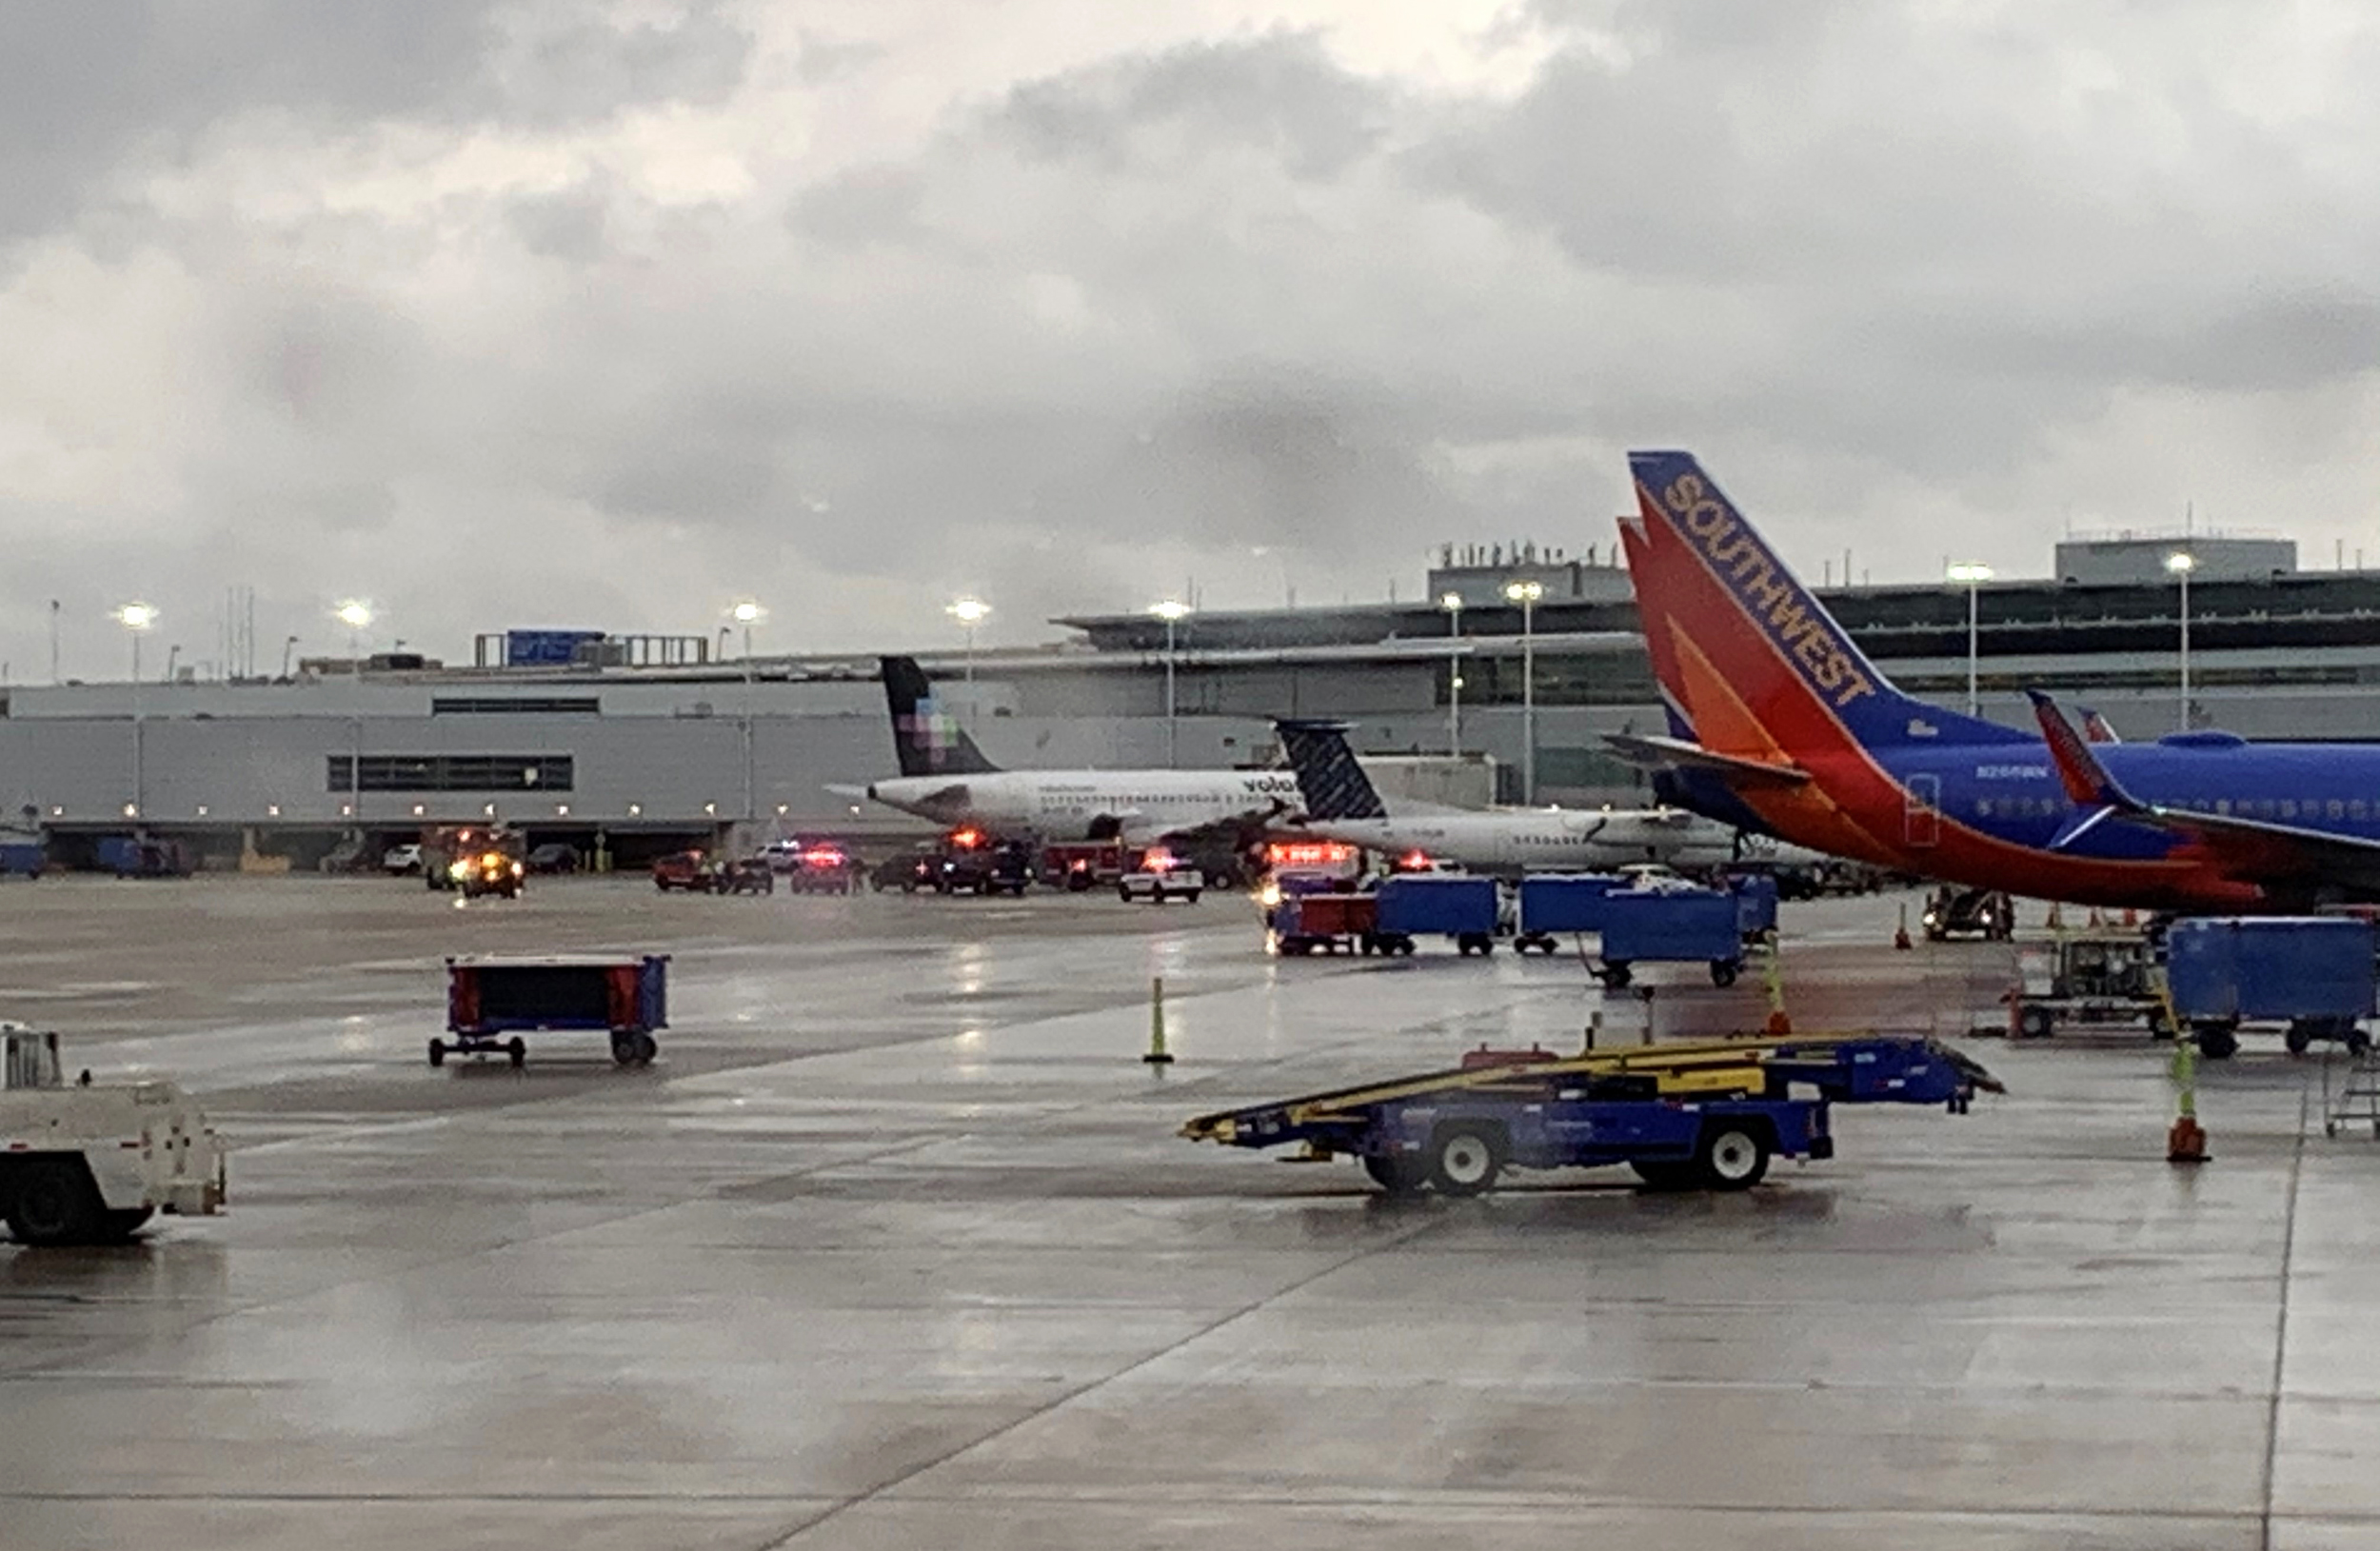 Luggage explodes after being run over at Midway Airport